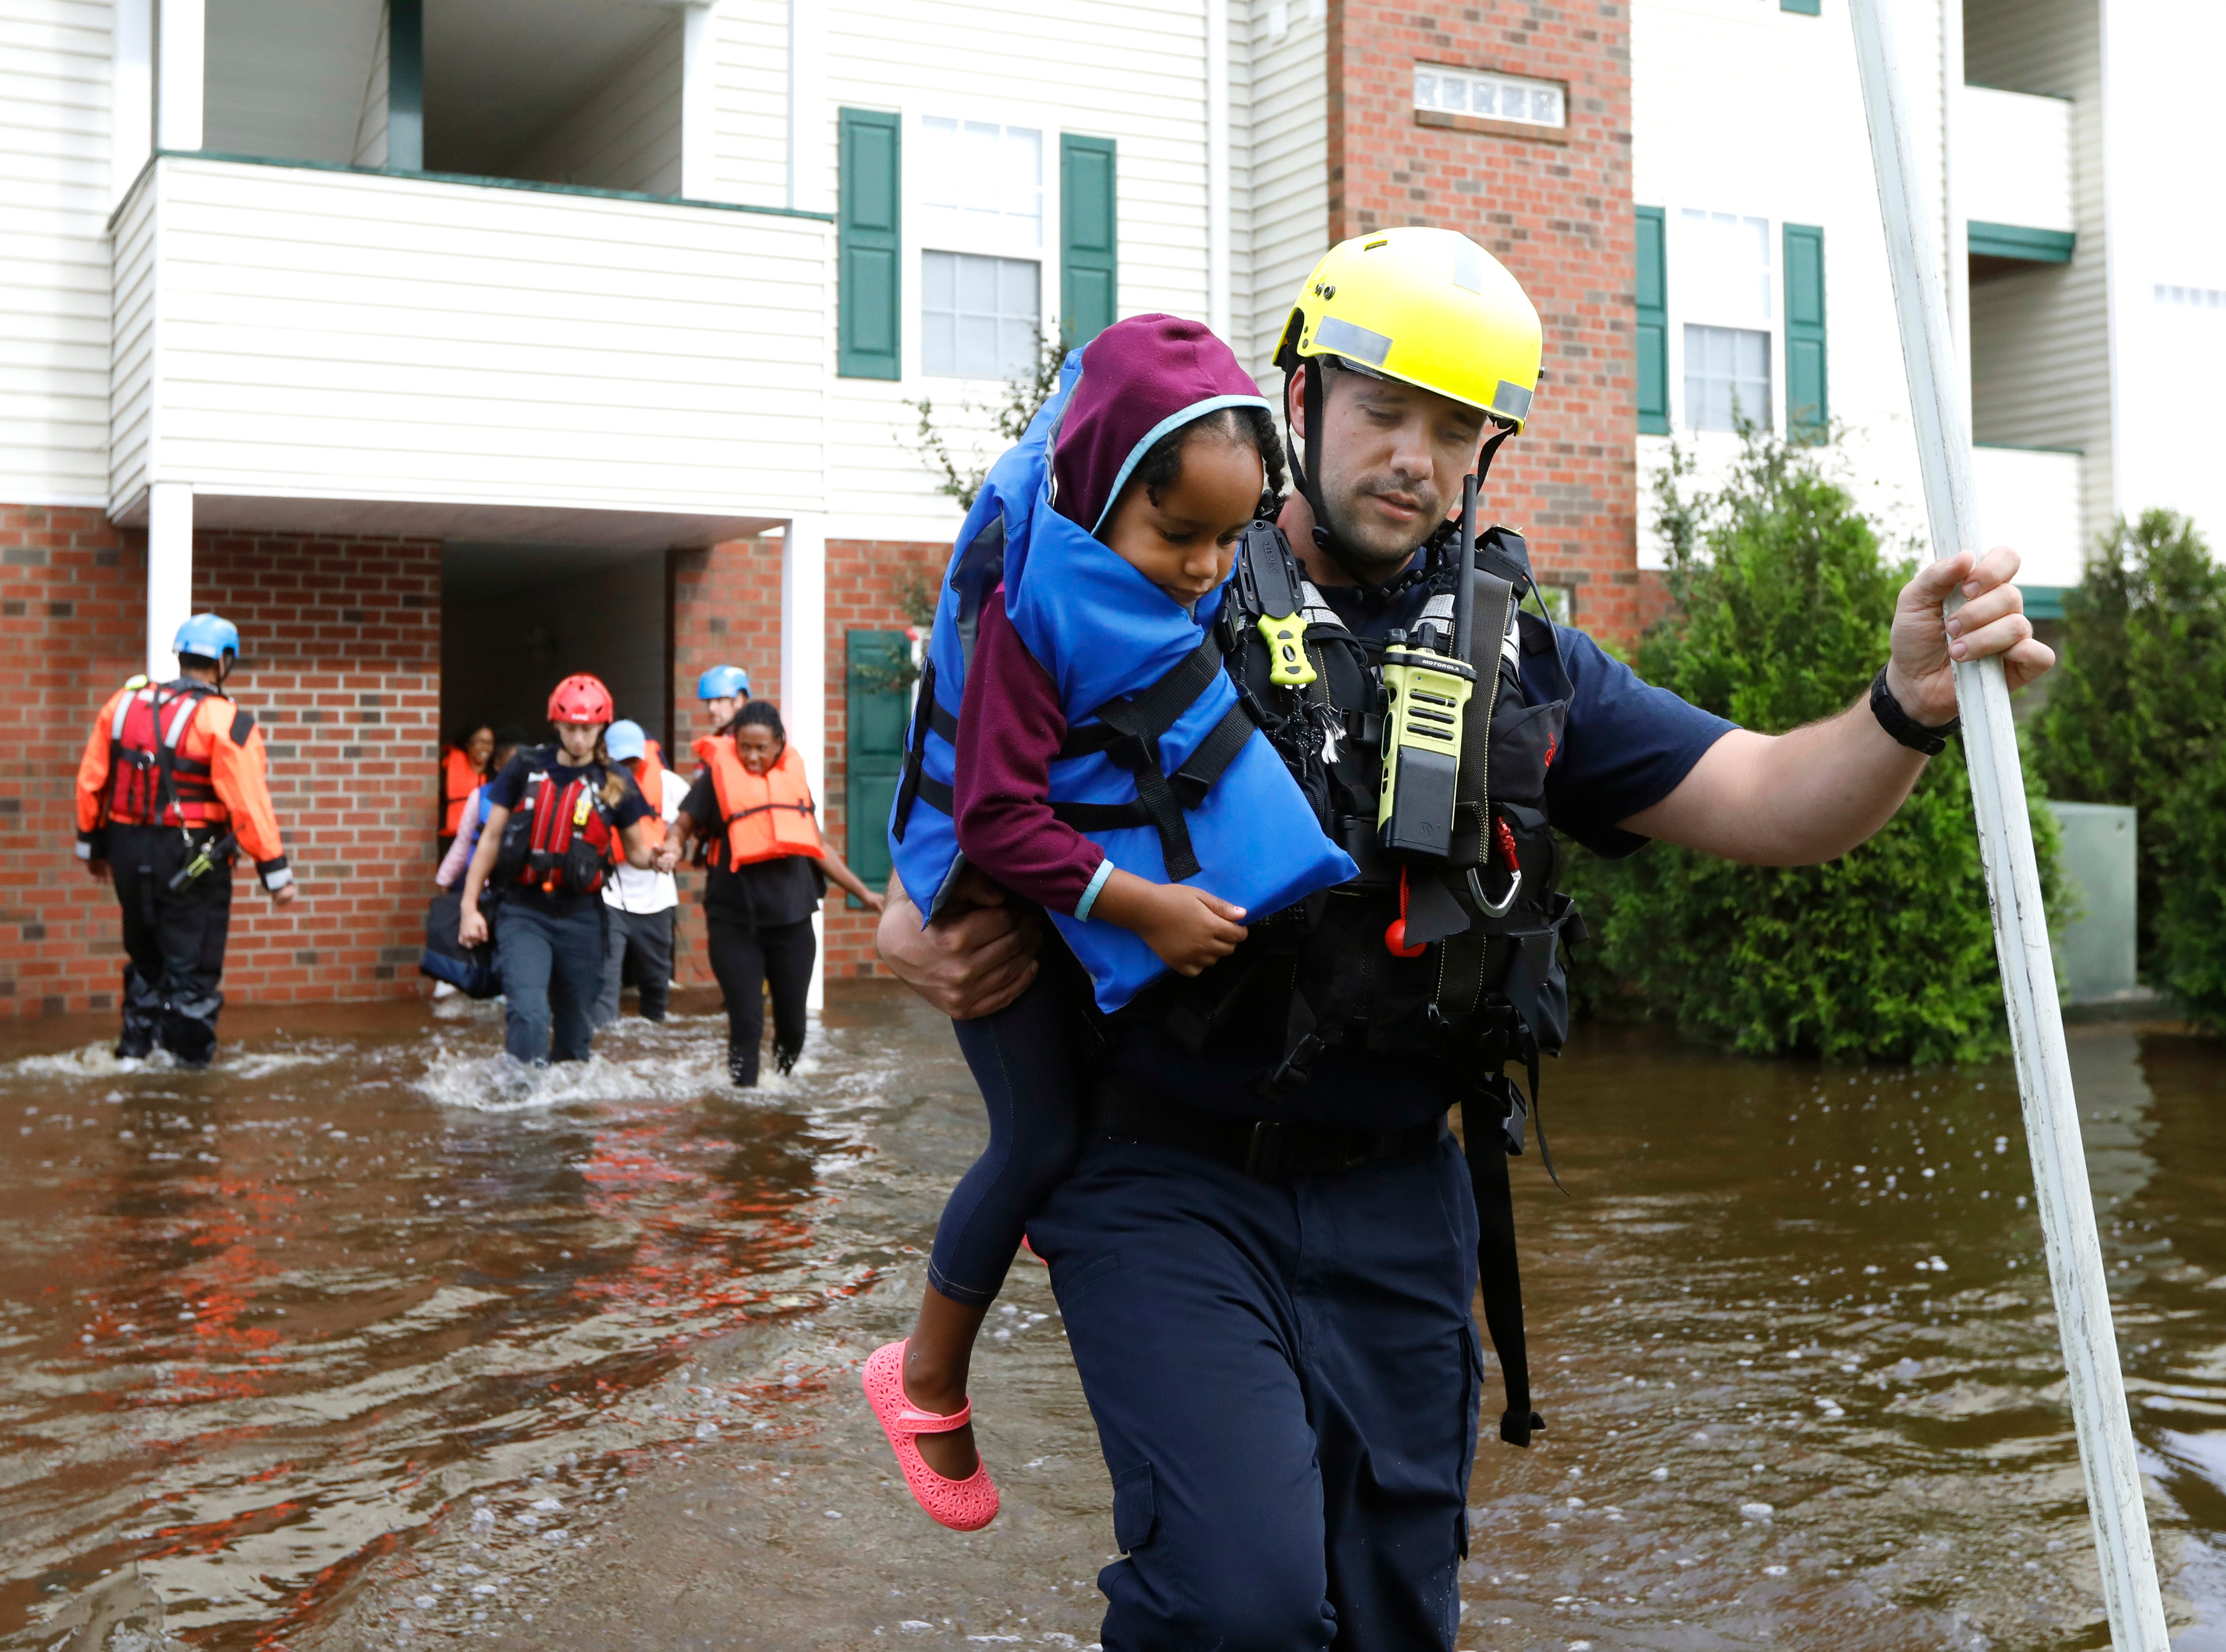 Capt. Steven Barker with Spring Lake Fire Department helps evacuate residents from the Heritage at Fort Bragg Apartments in Spring Lake, N.C., Monday Sept. 17, 2018.